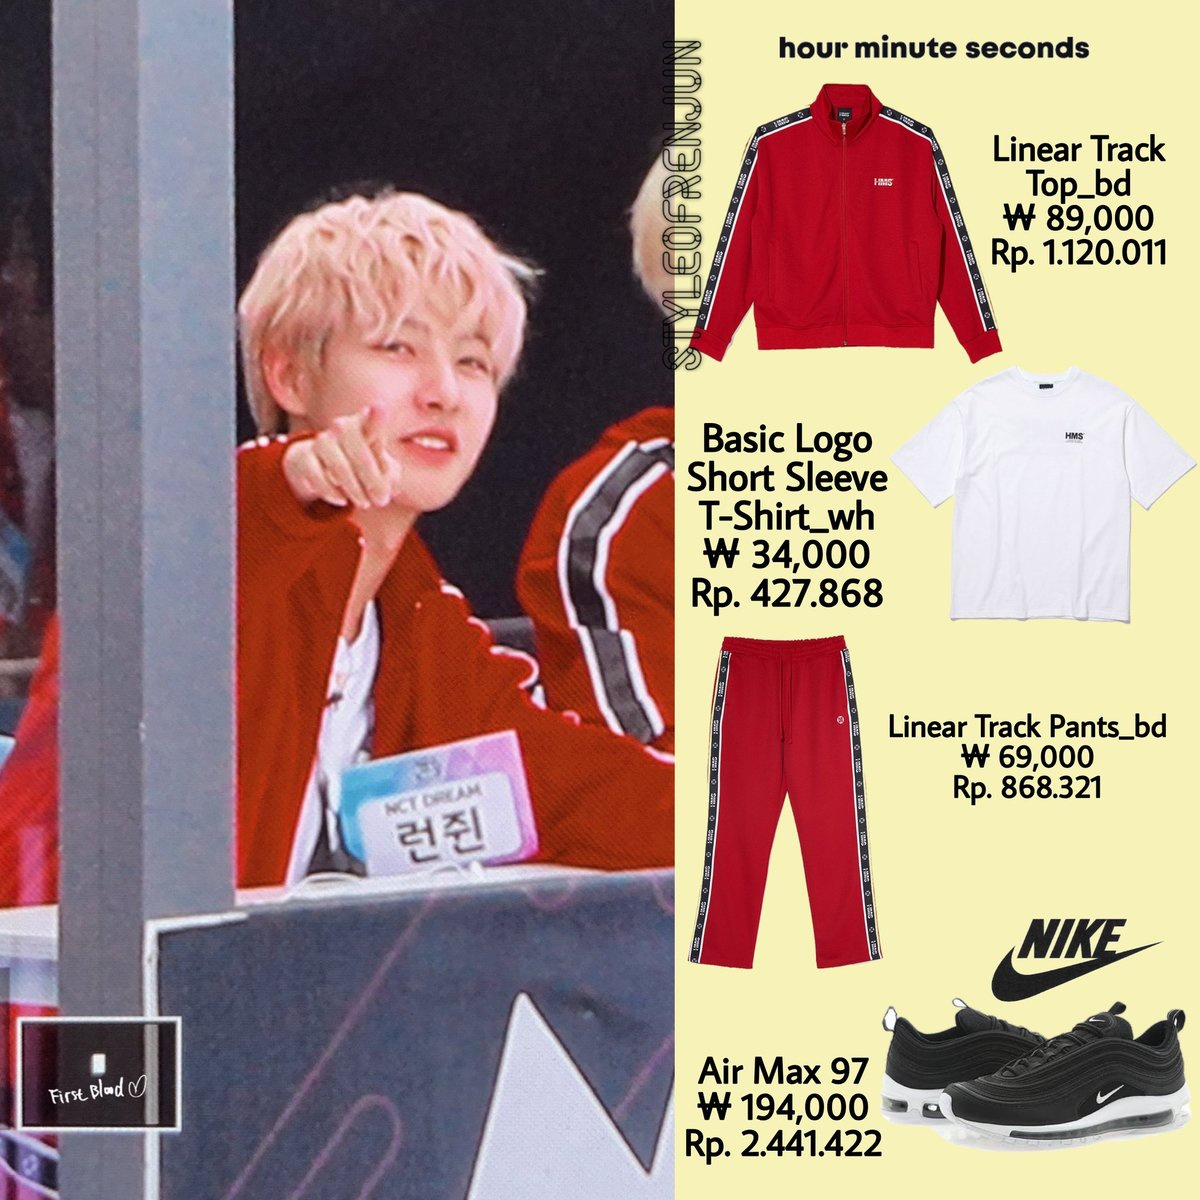 200914 NCT DREAM 아육대 - 💚💛 Hour Minute Seconds - Track Suit & Tee Nike - Air Max 97 Track Suit © : 💚